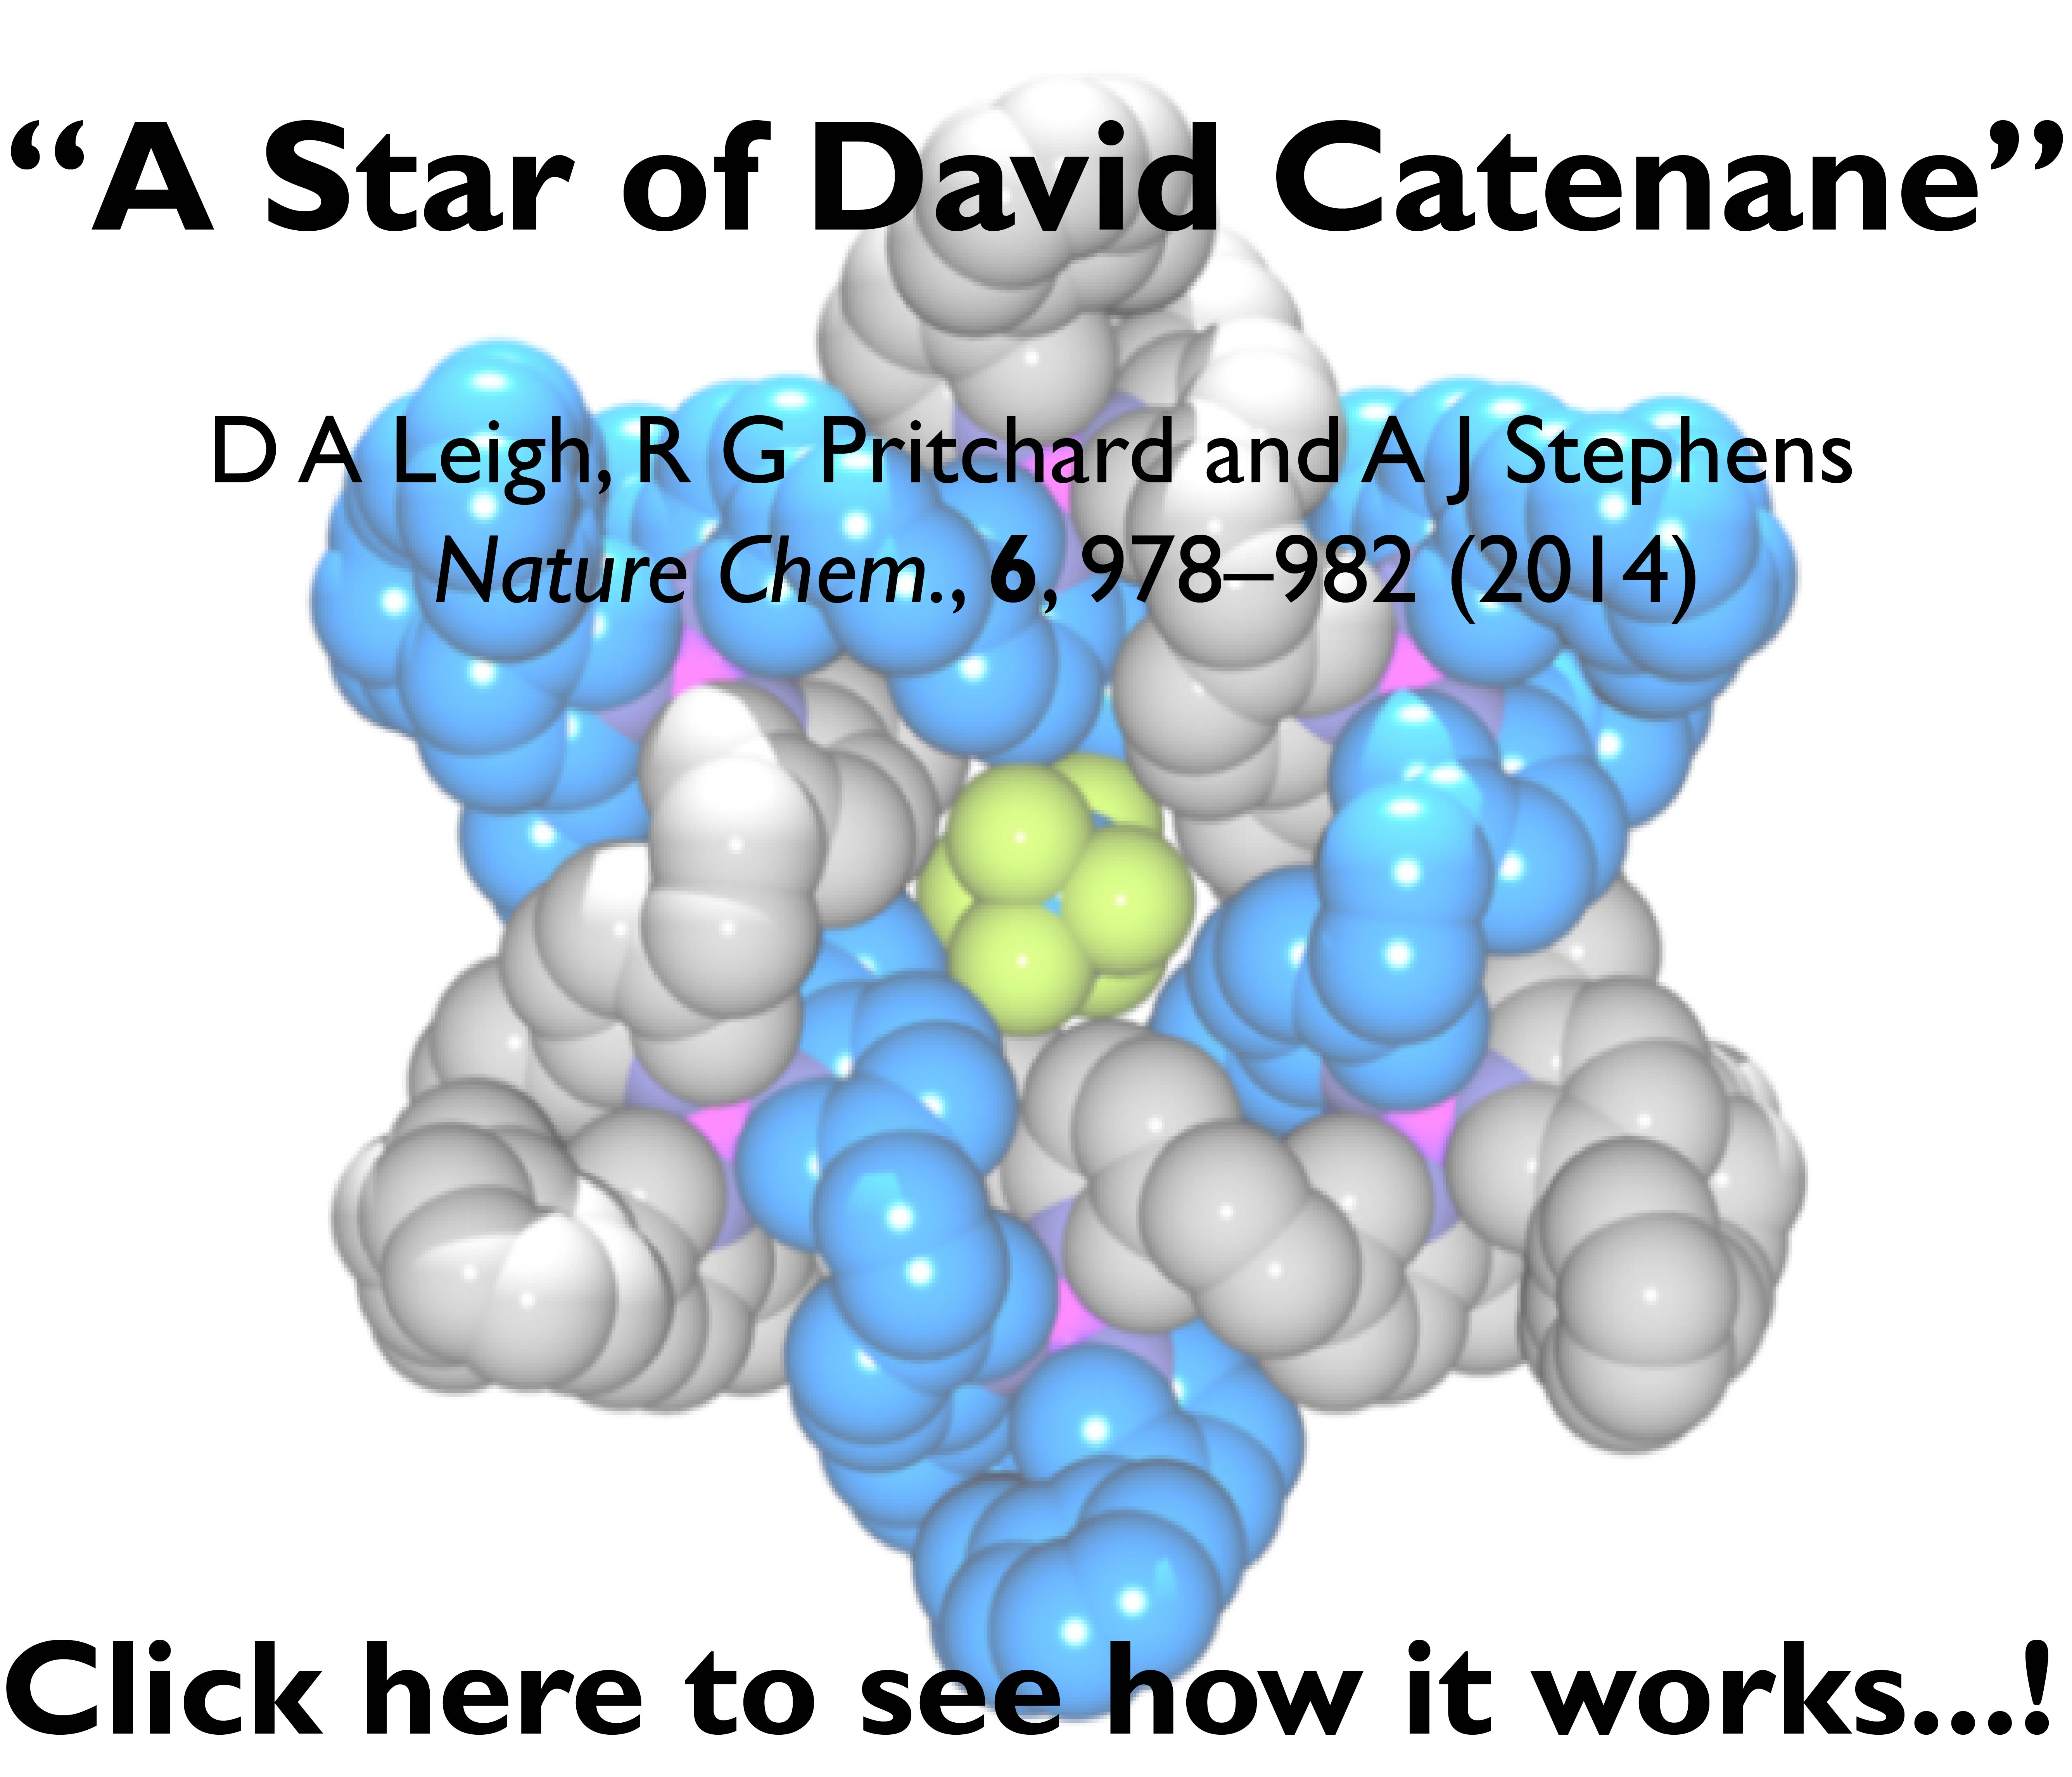 A Star of David Catenane